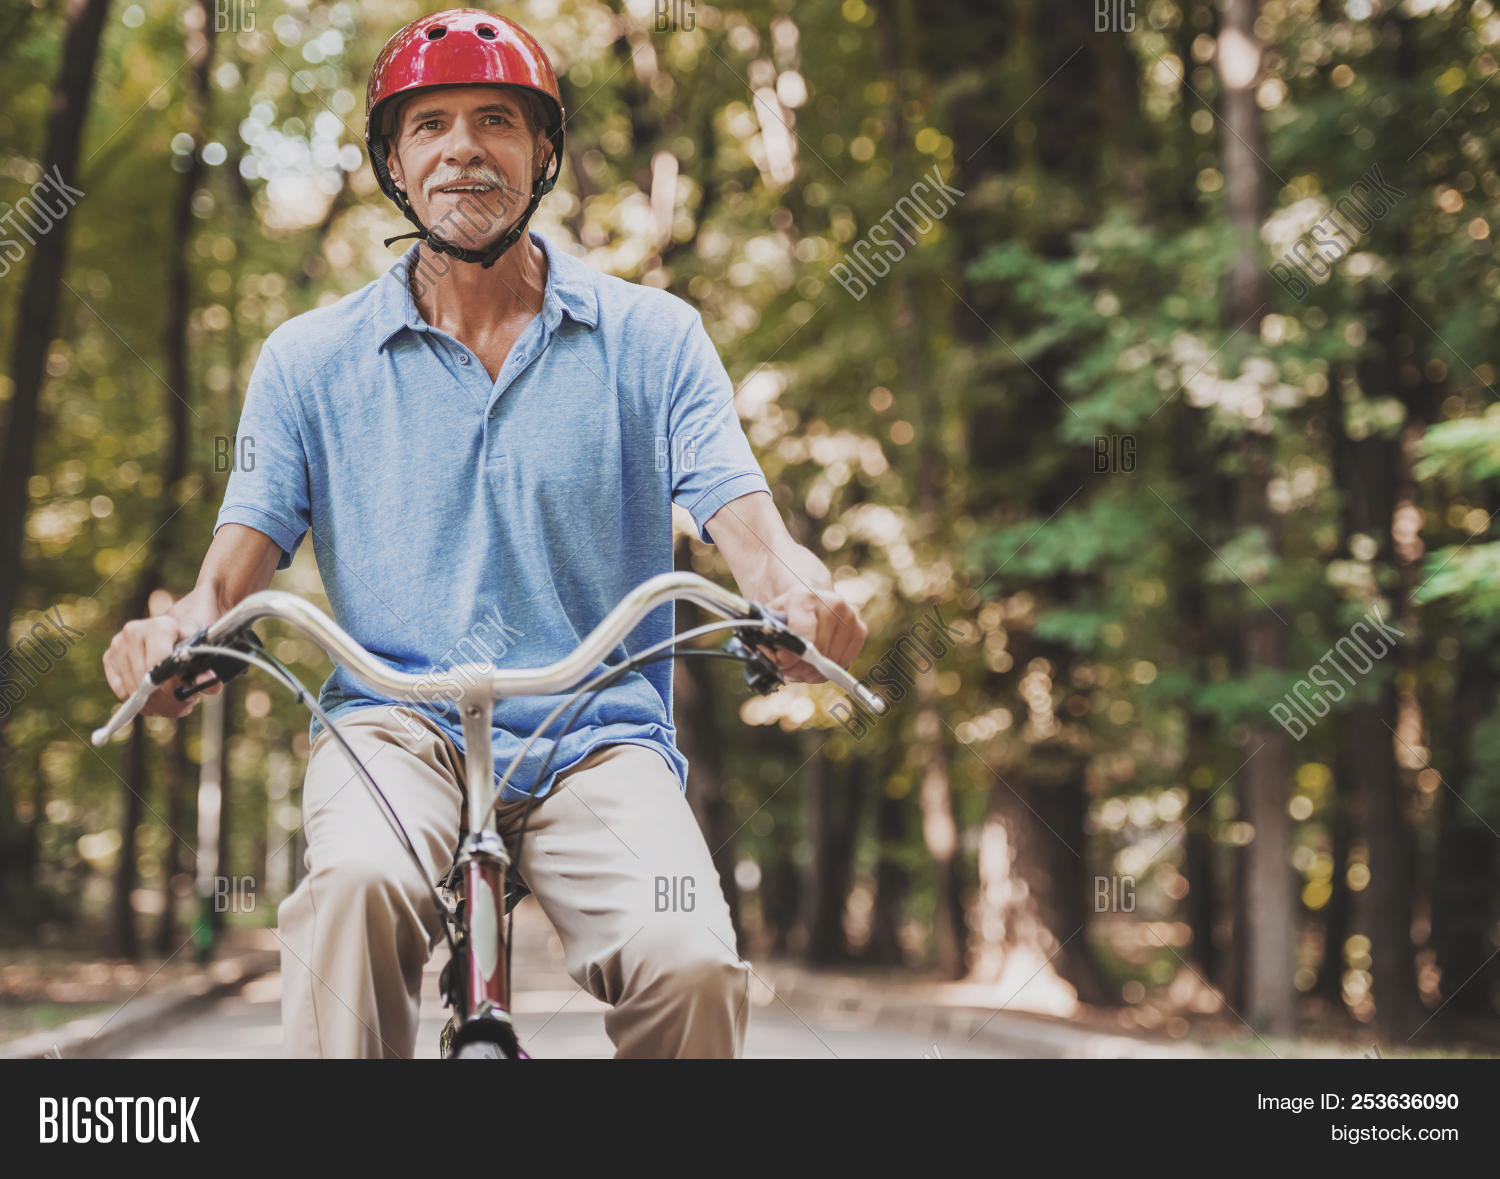 Old Man Riding On Image & Photo (Free Trial) | Bigstock